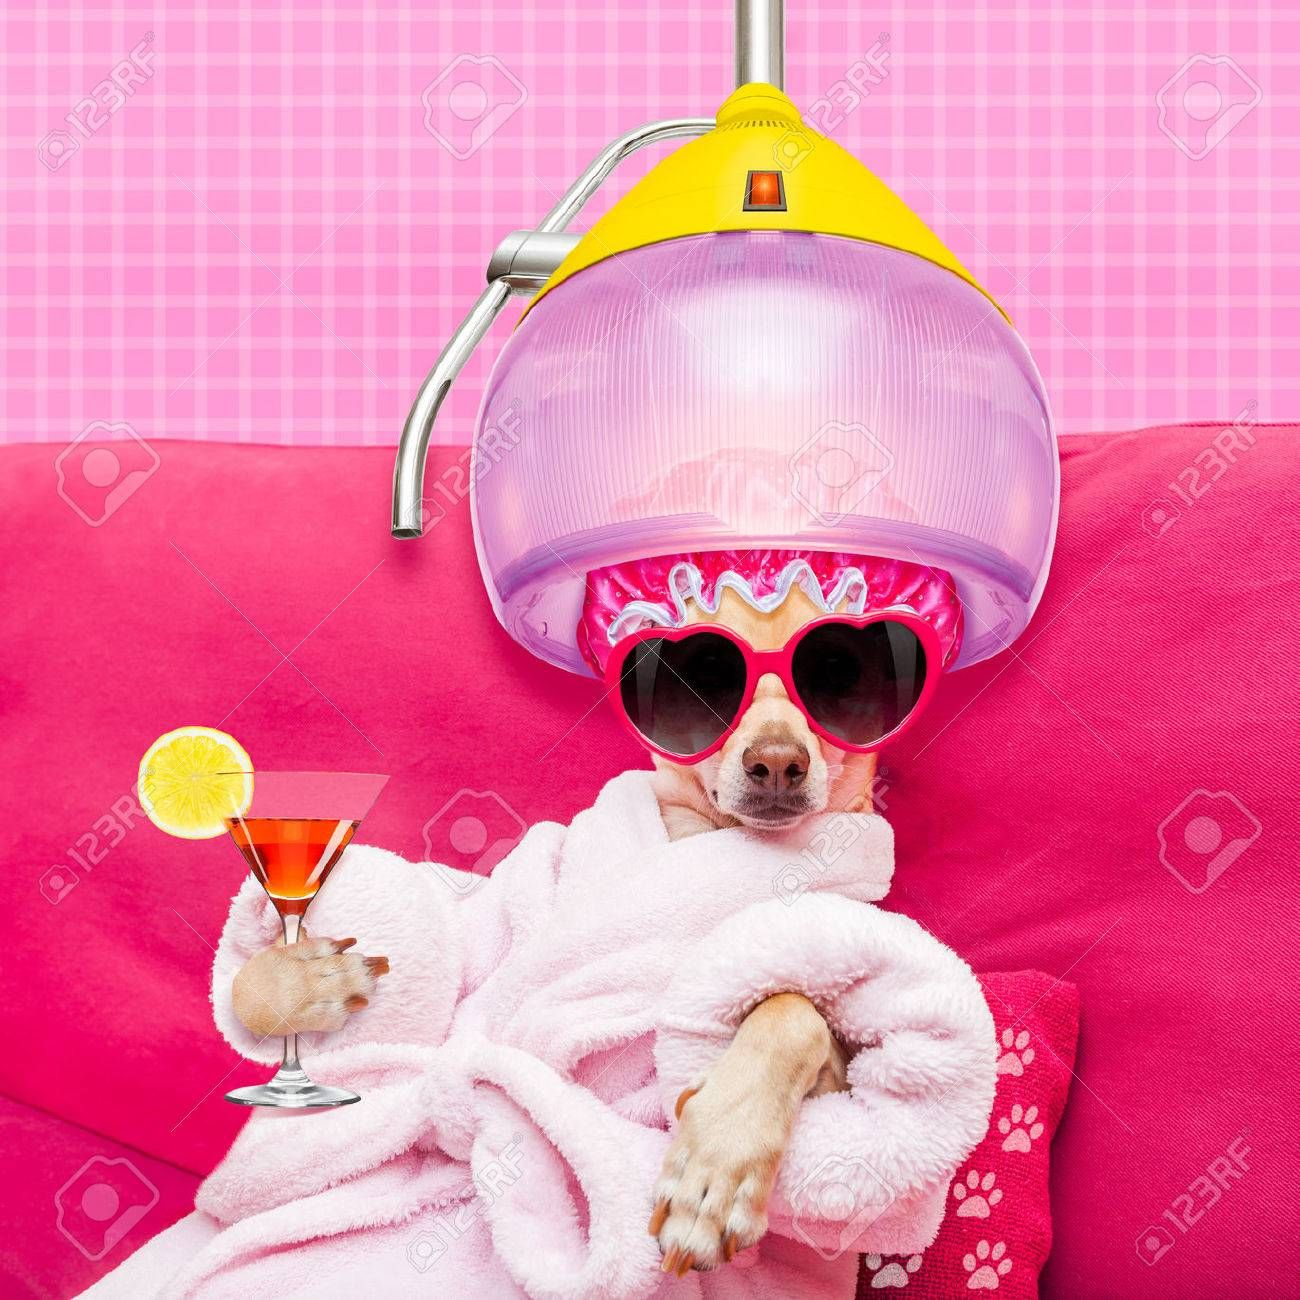 Chihuahua Dog Relaxing And Lying In Spa Wellness Center Wearing